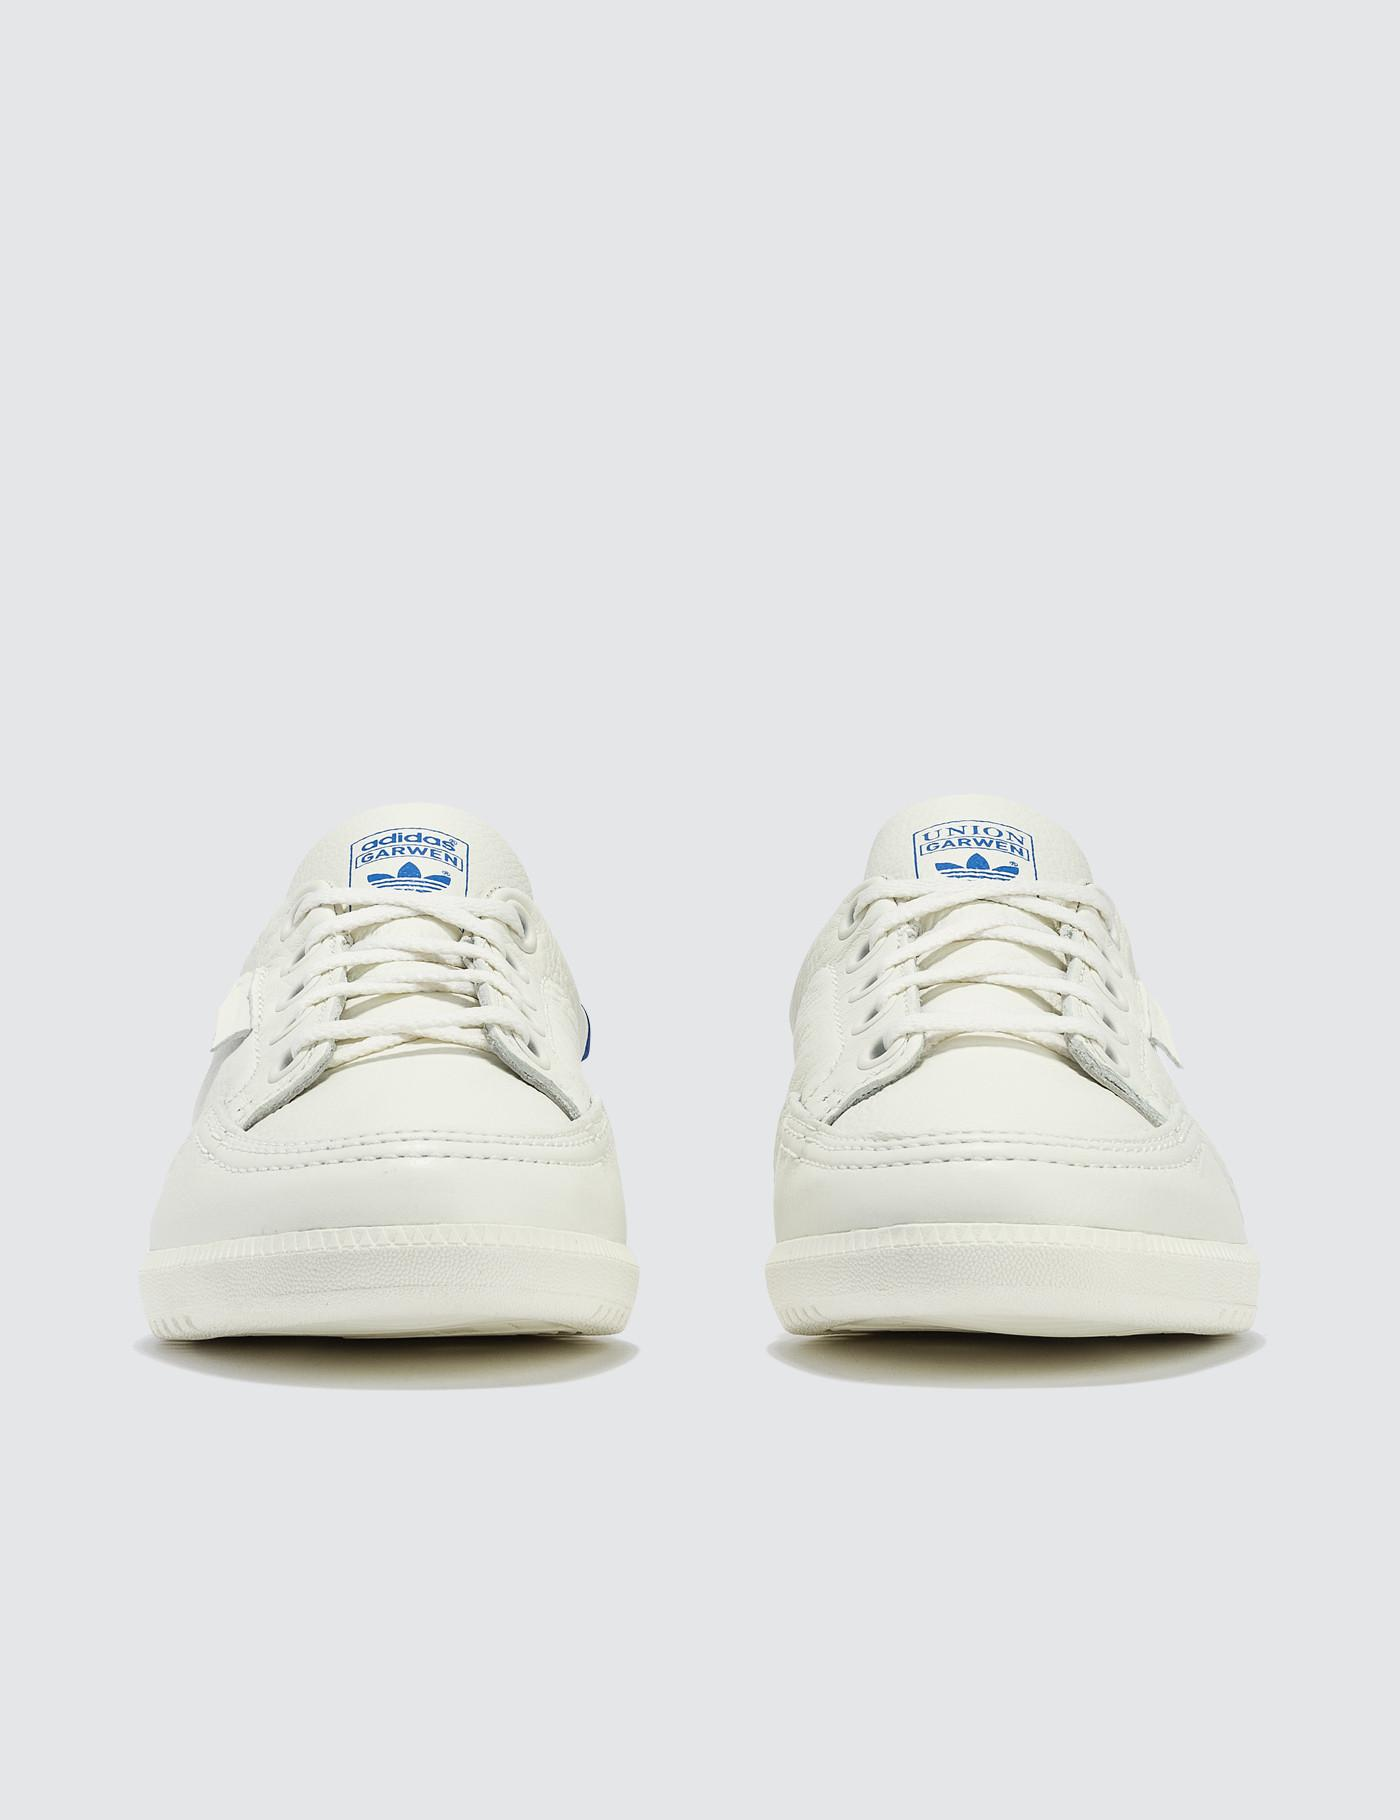 release date: 6055b 3e632 Lyst - adidas Originals Union La X Adidas Spezial Garwen Spzl in White for  Men